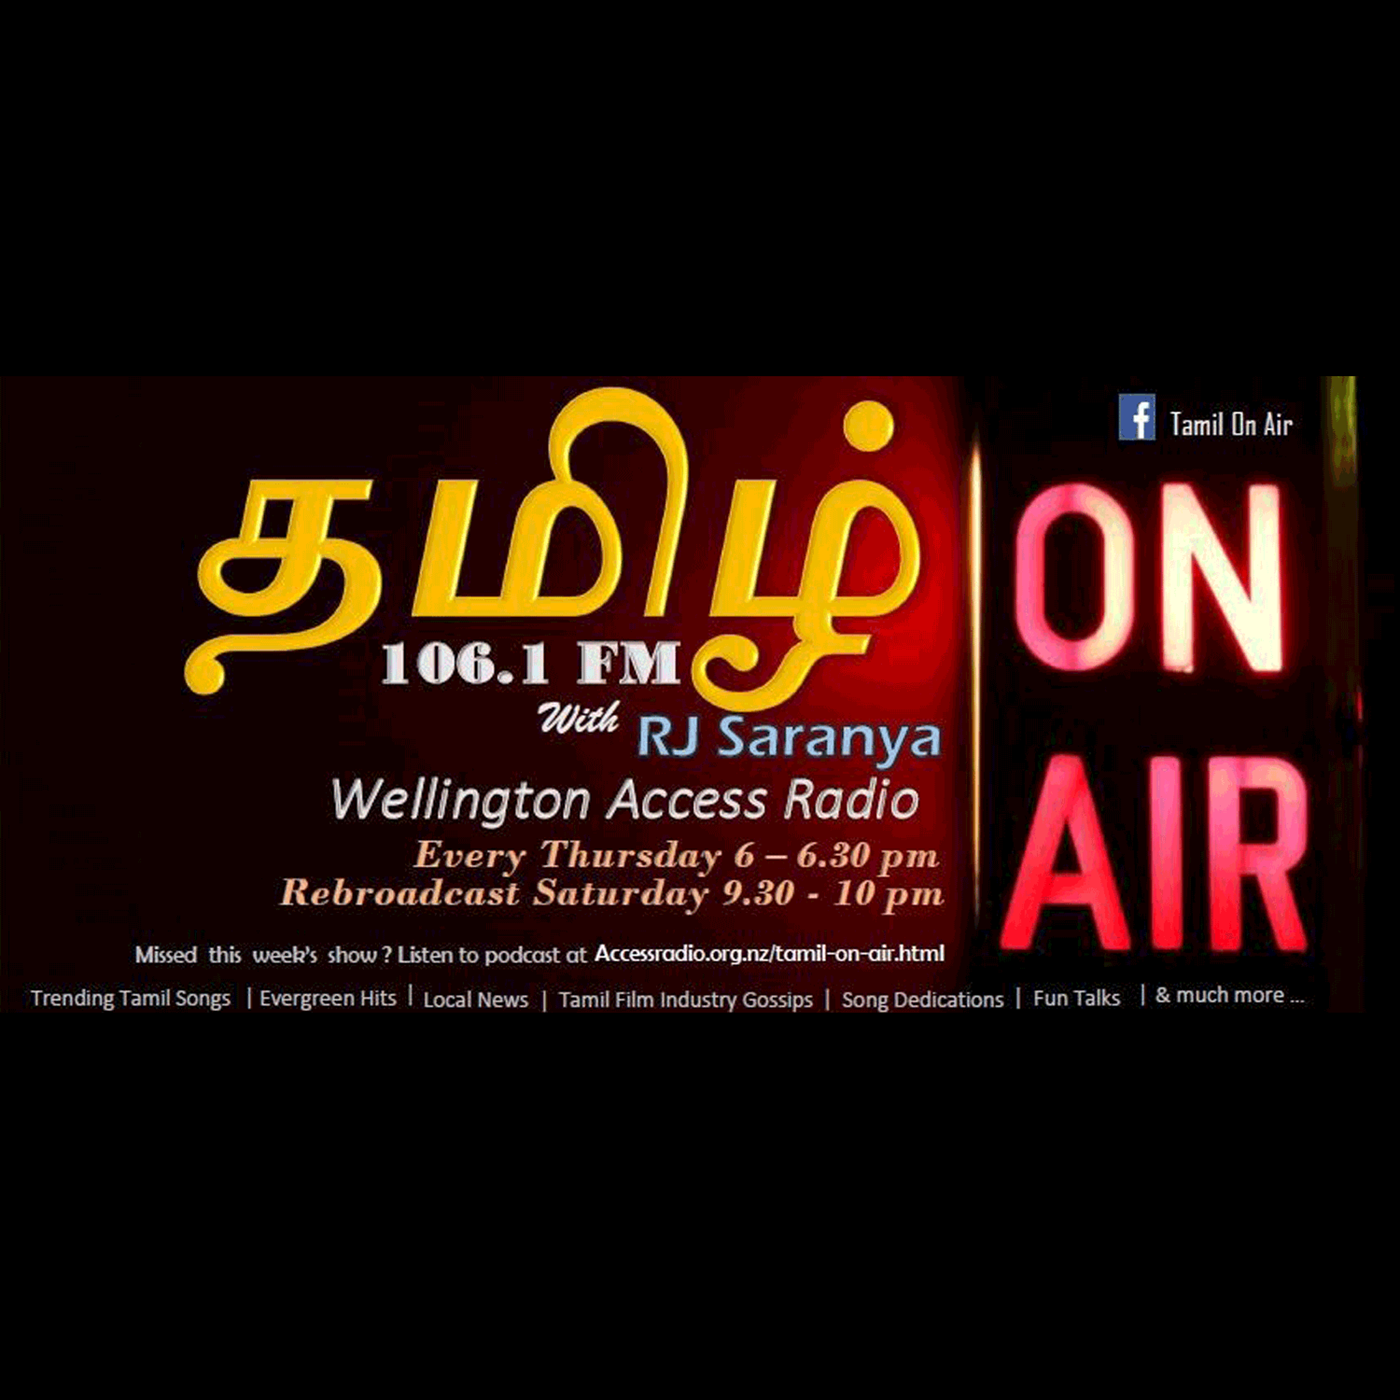 Tamil on Air